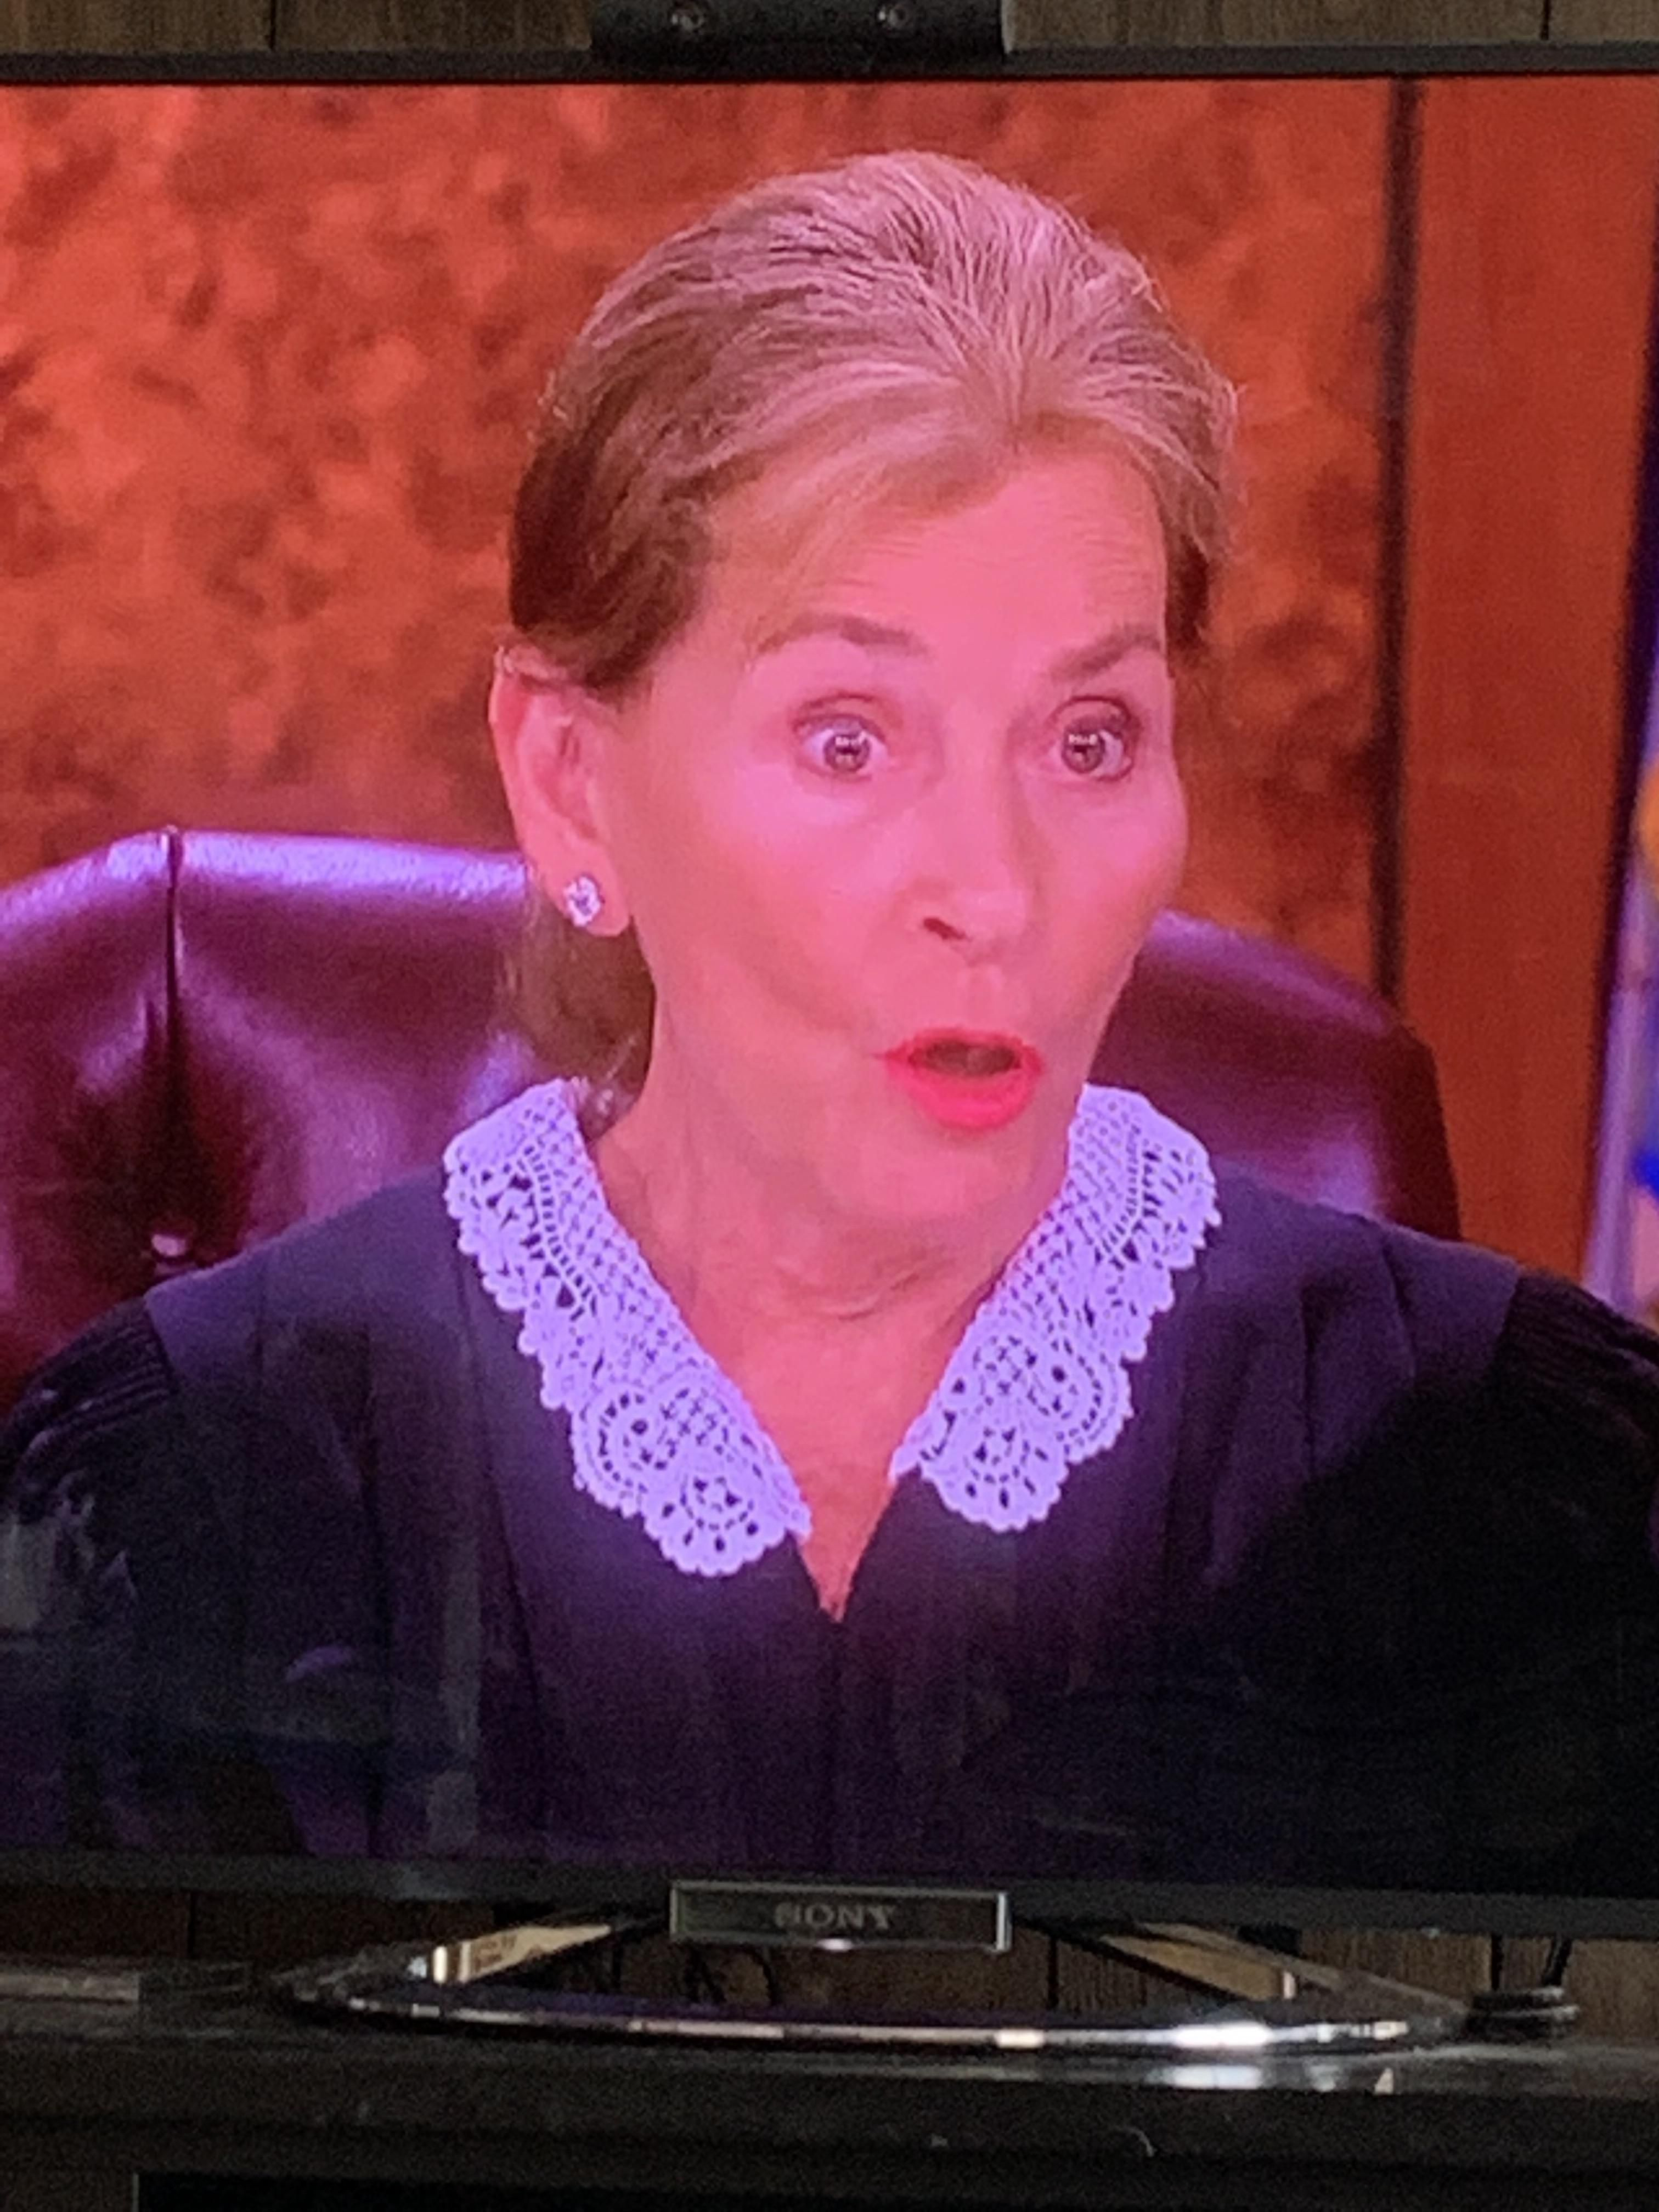 judge judy laying down the law with a new young hairstyle